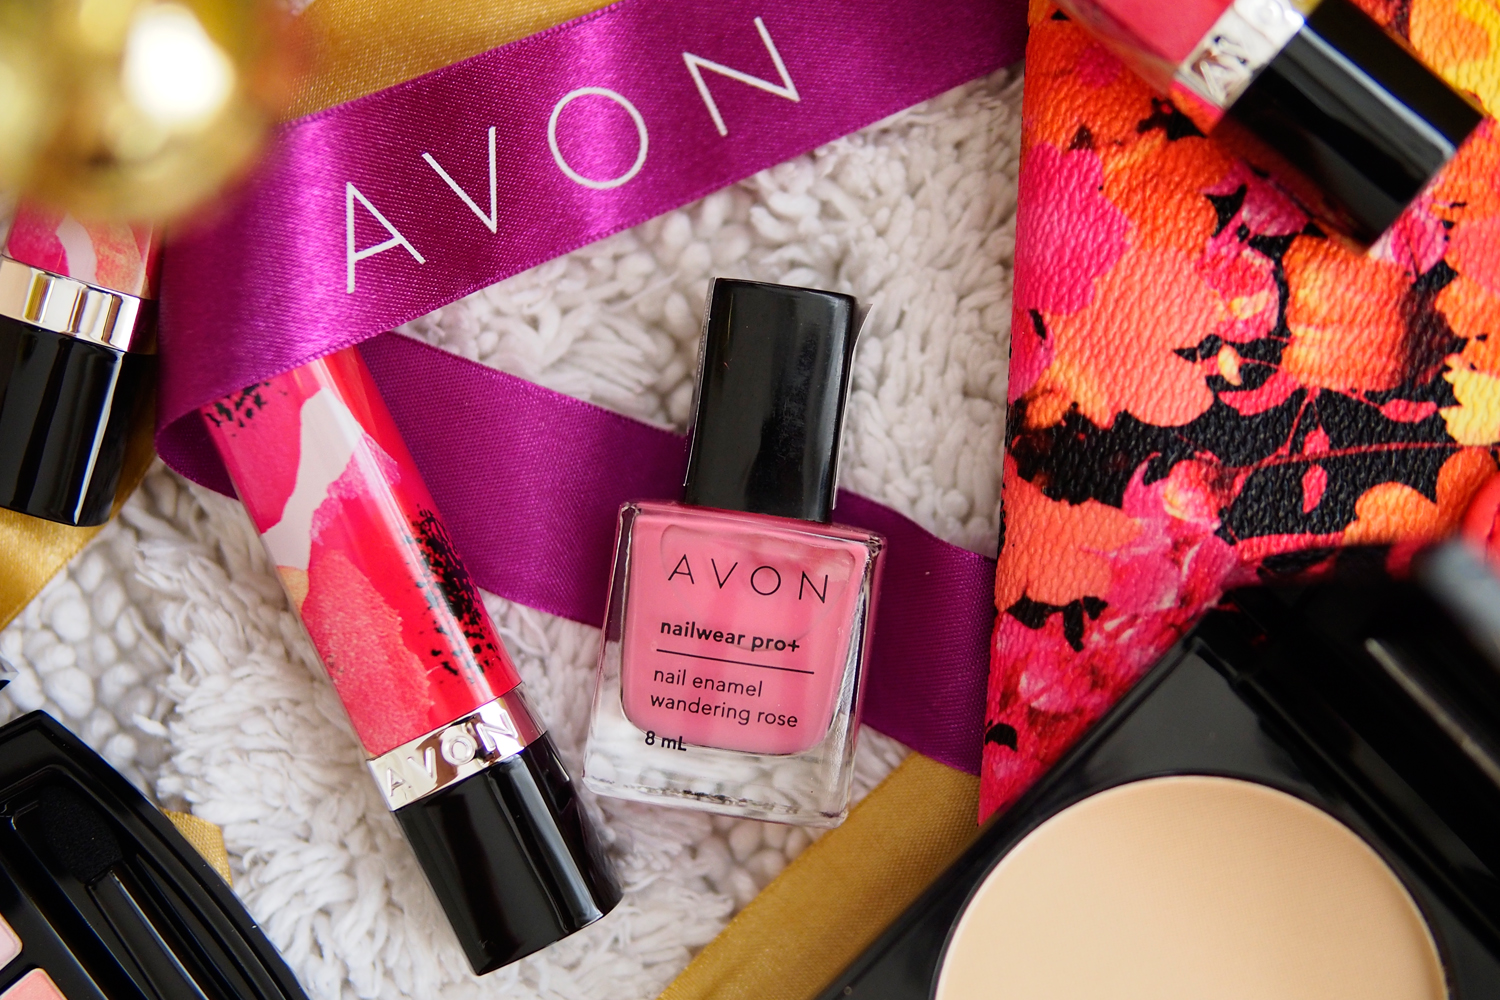 AVON BELLE IN BLOOM COLLECTION NAILS